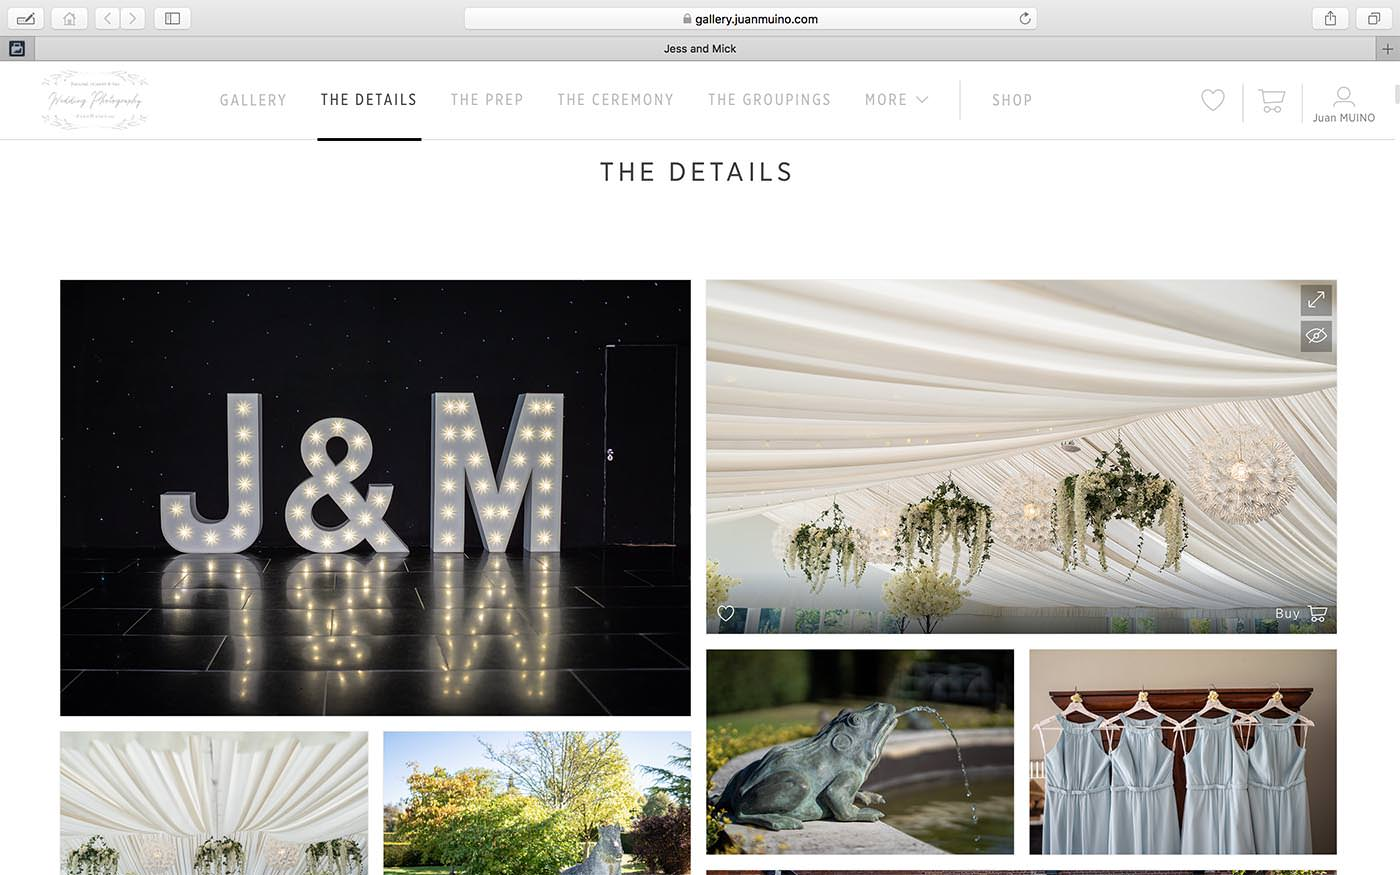 Screenshot showing our lovely new client proofing gallery, this images shows a montage of wedding detail images.